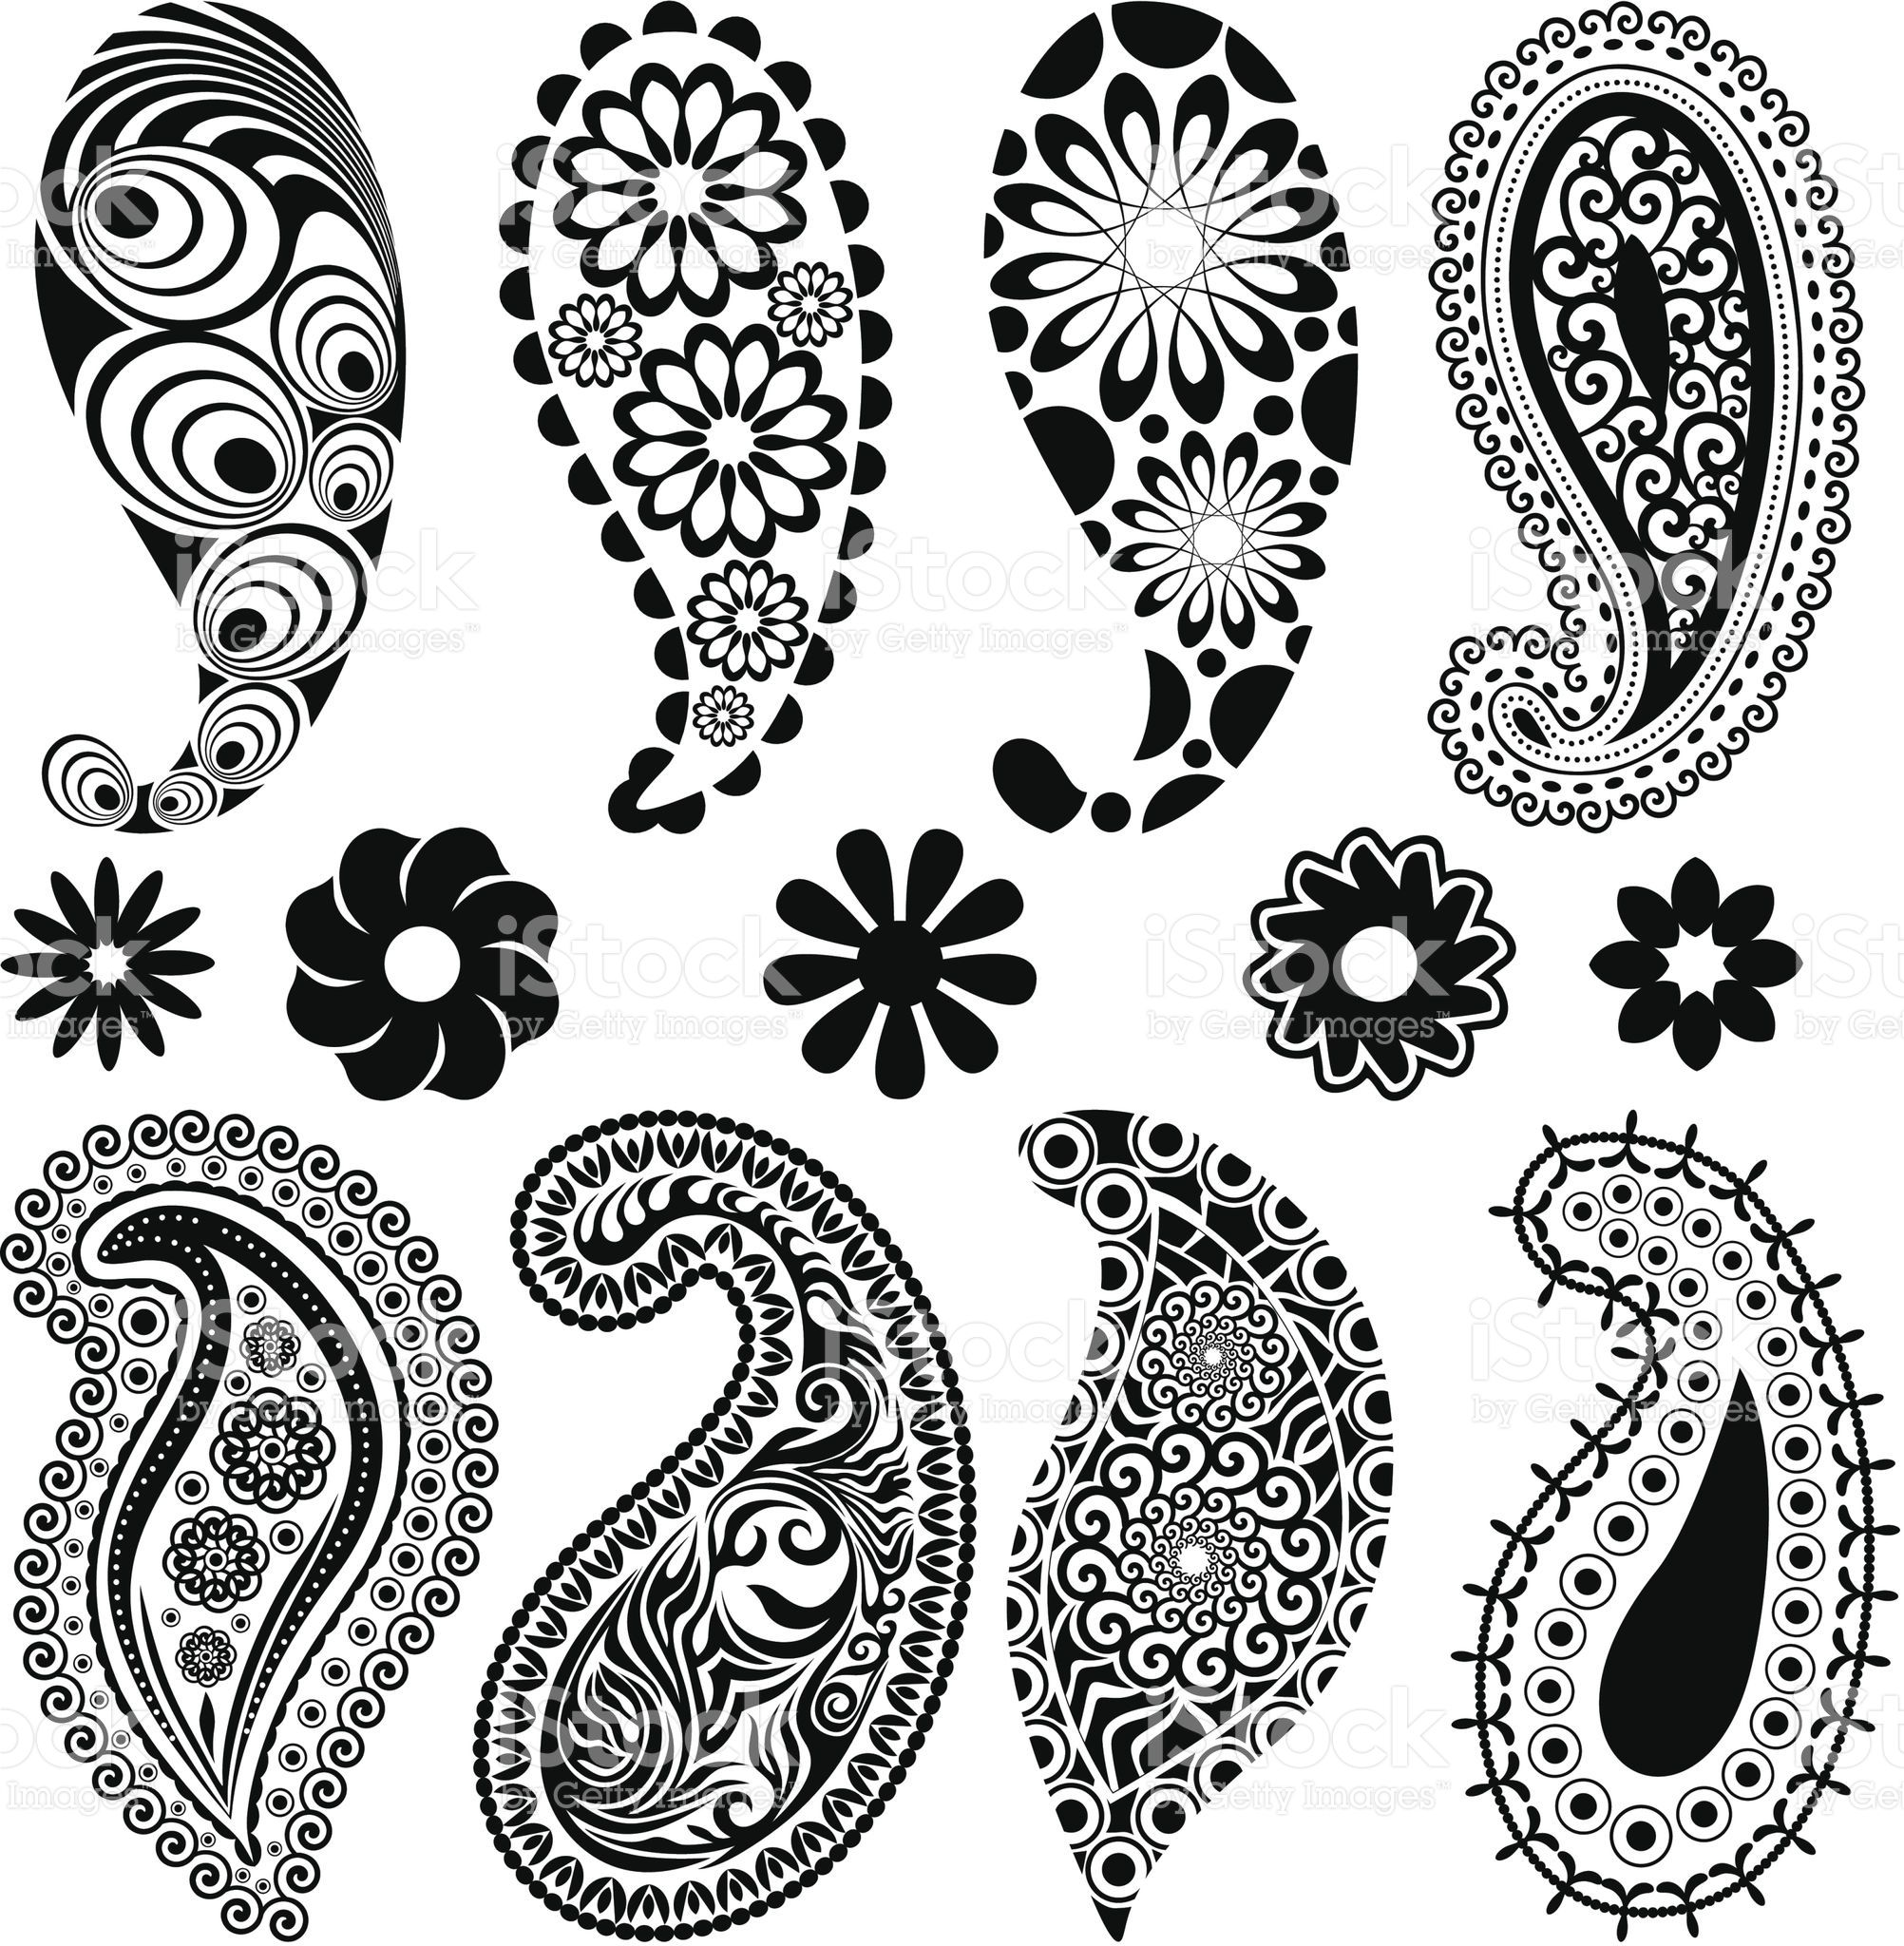 A Lot Of Paisley And Single Flowers In One Set Paisley Stencil